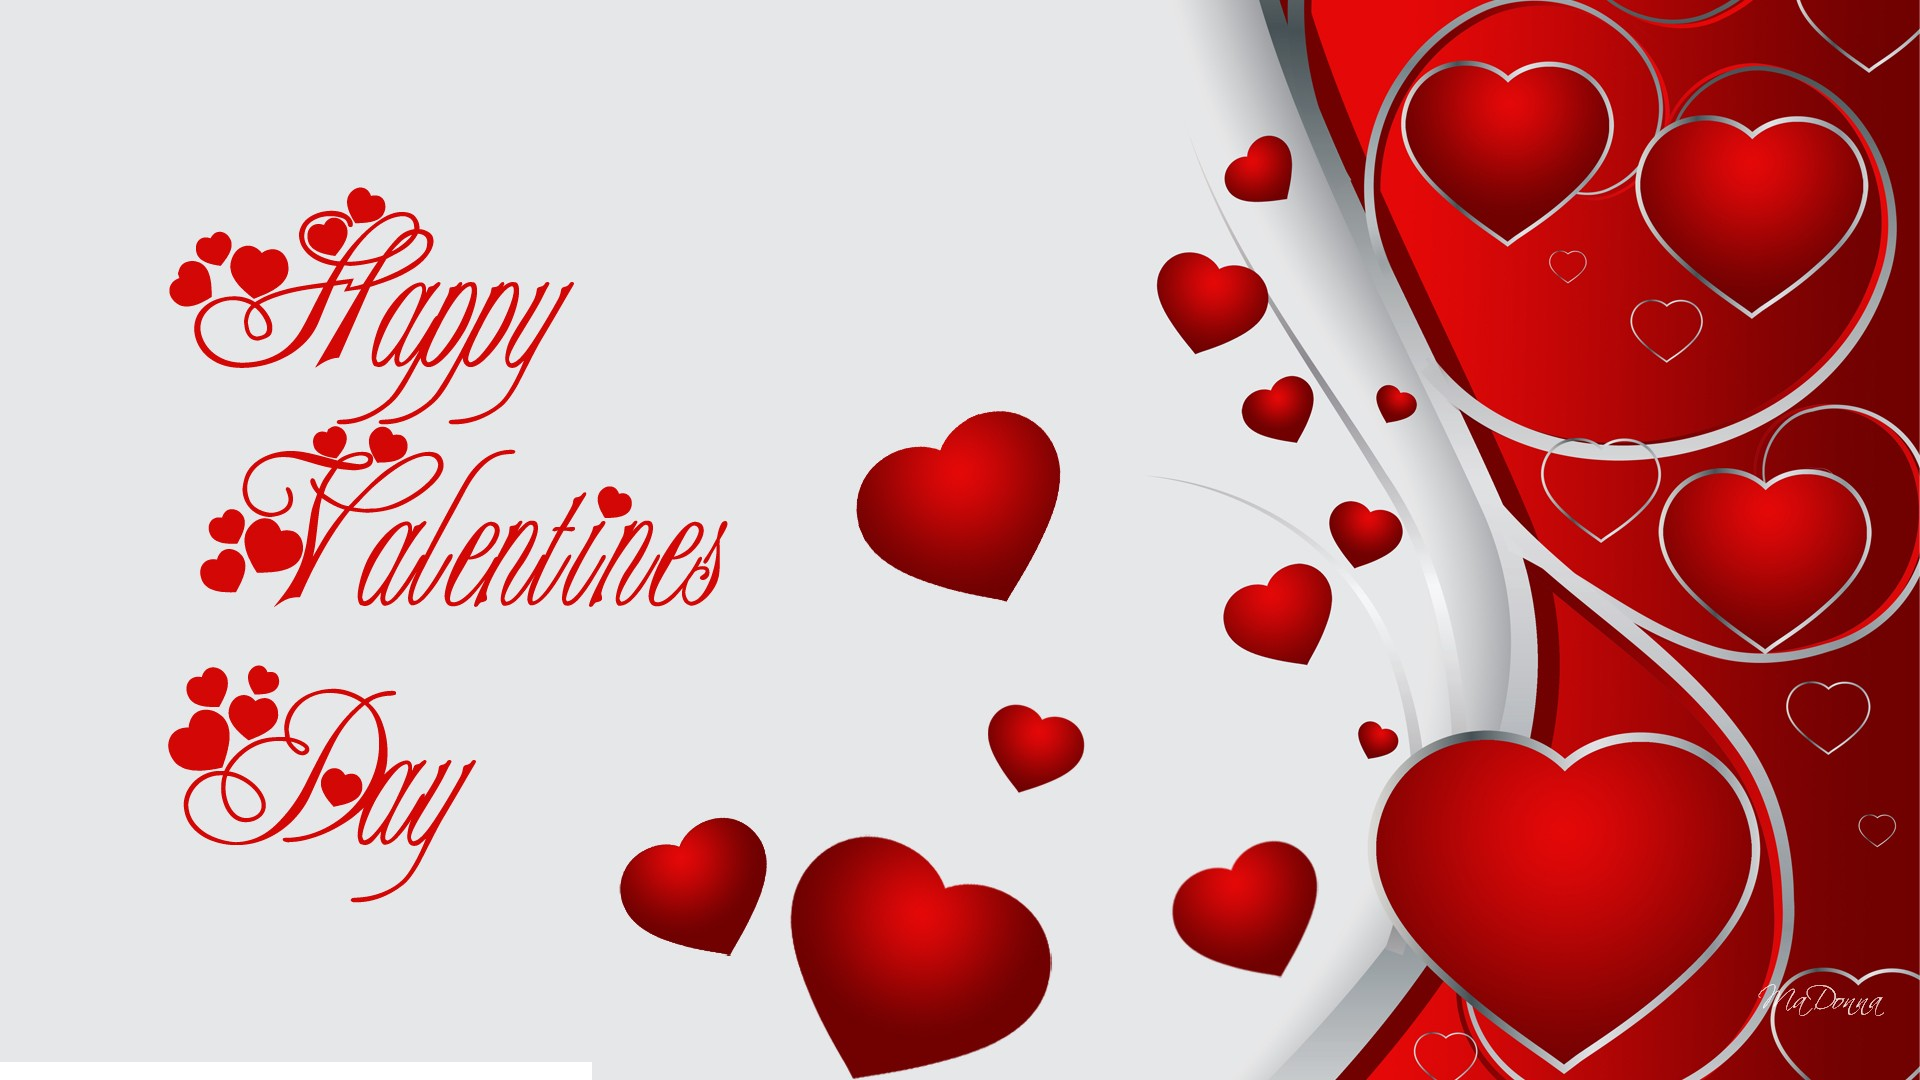 1000+ images about Valentineu0026#39;s Day on Pinterest | Happy valentines day